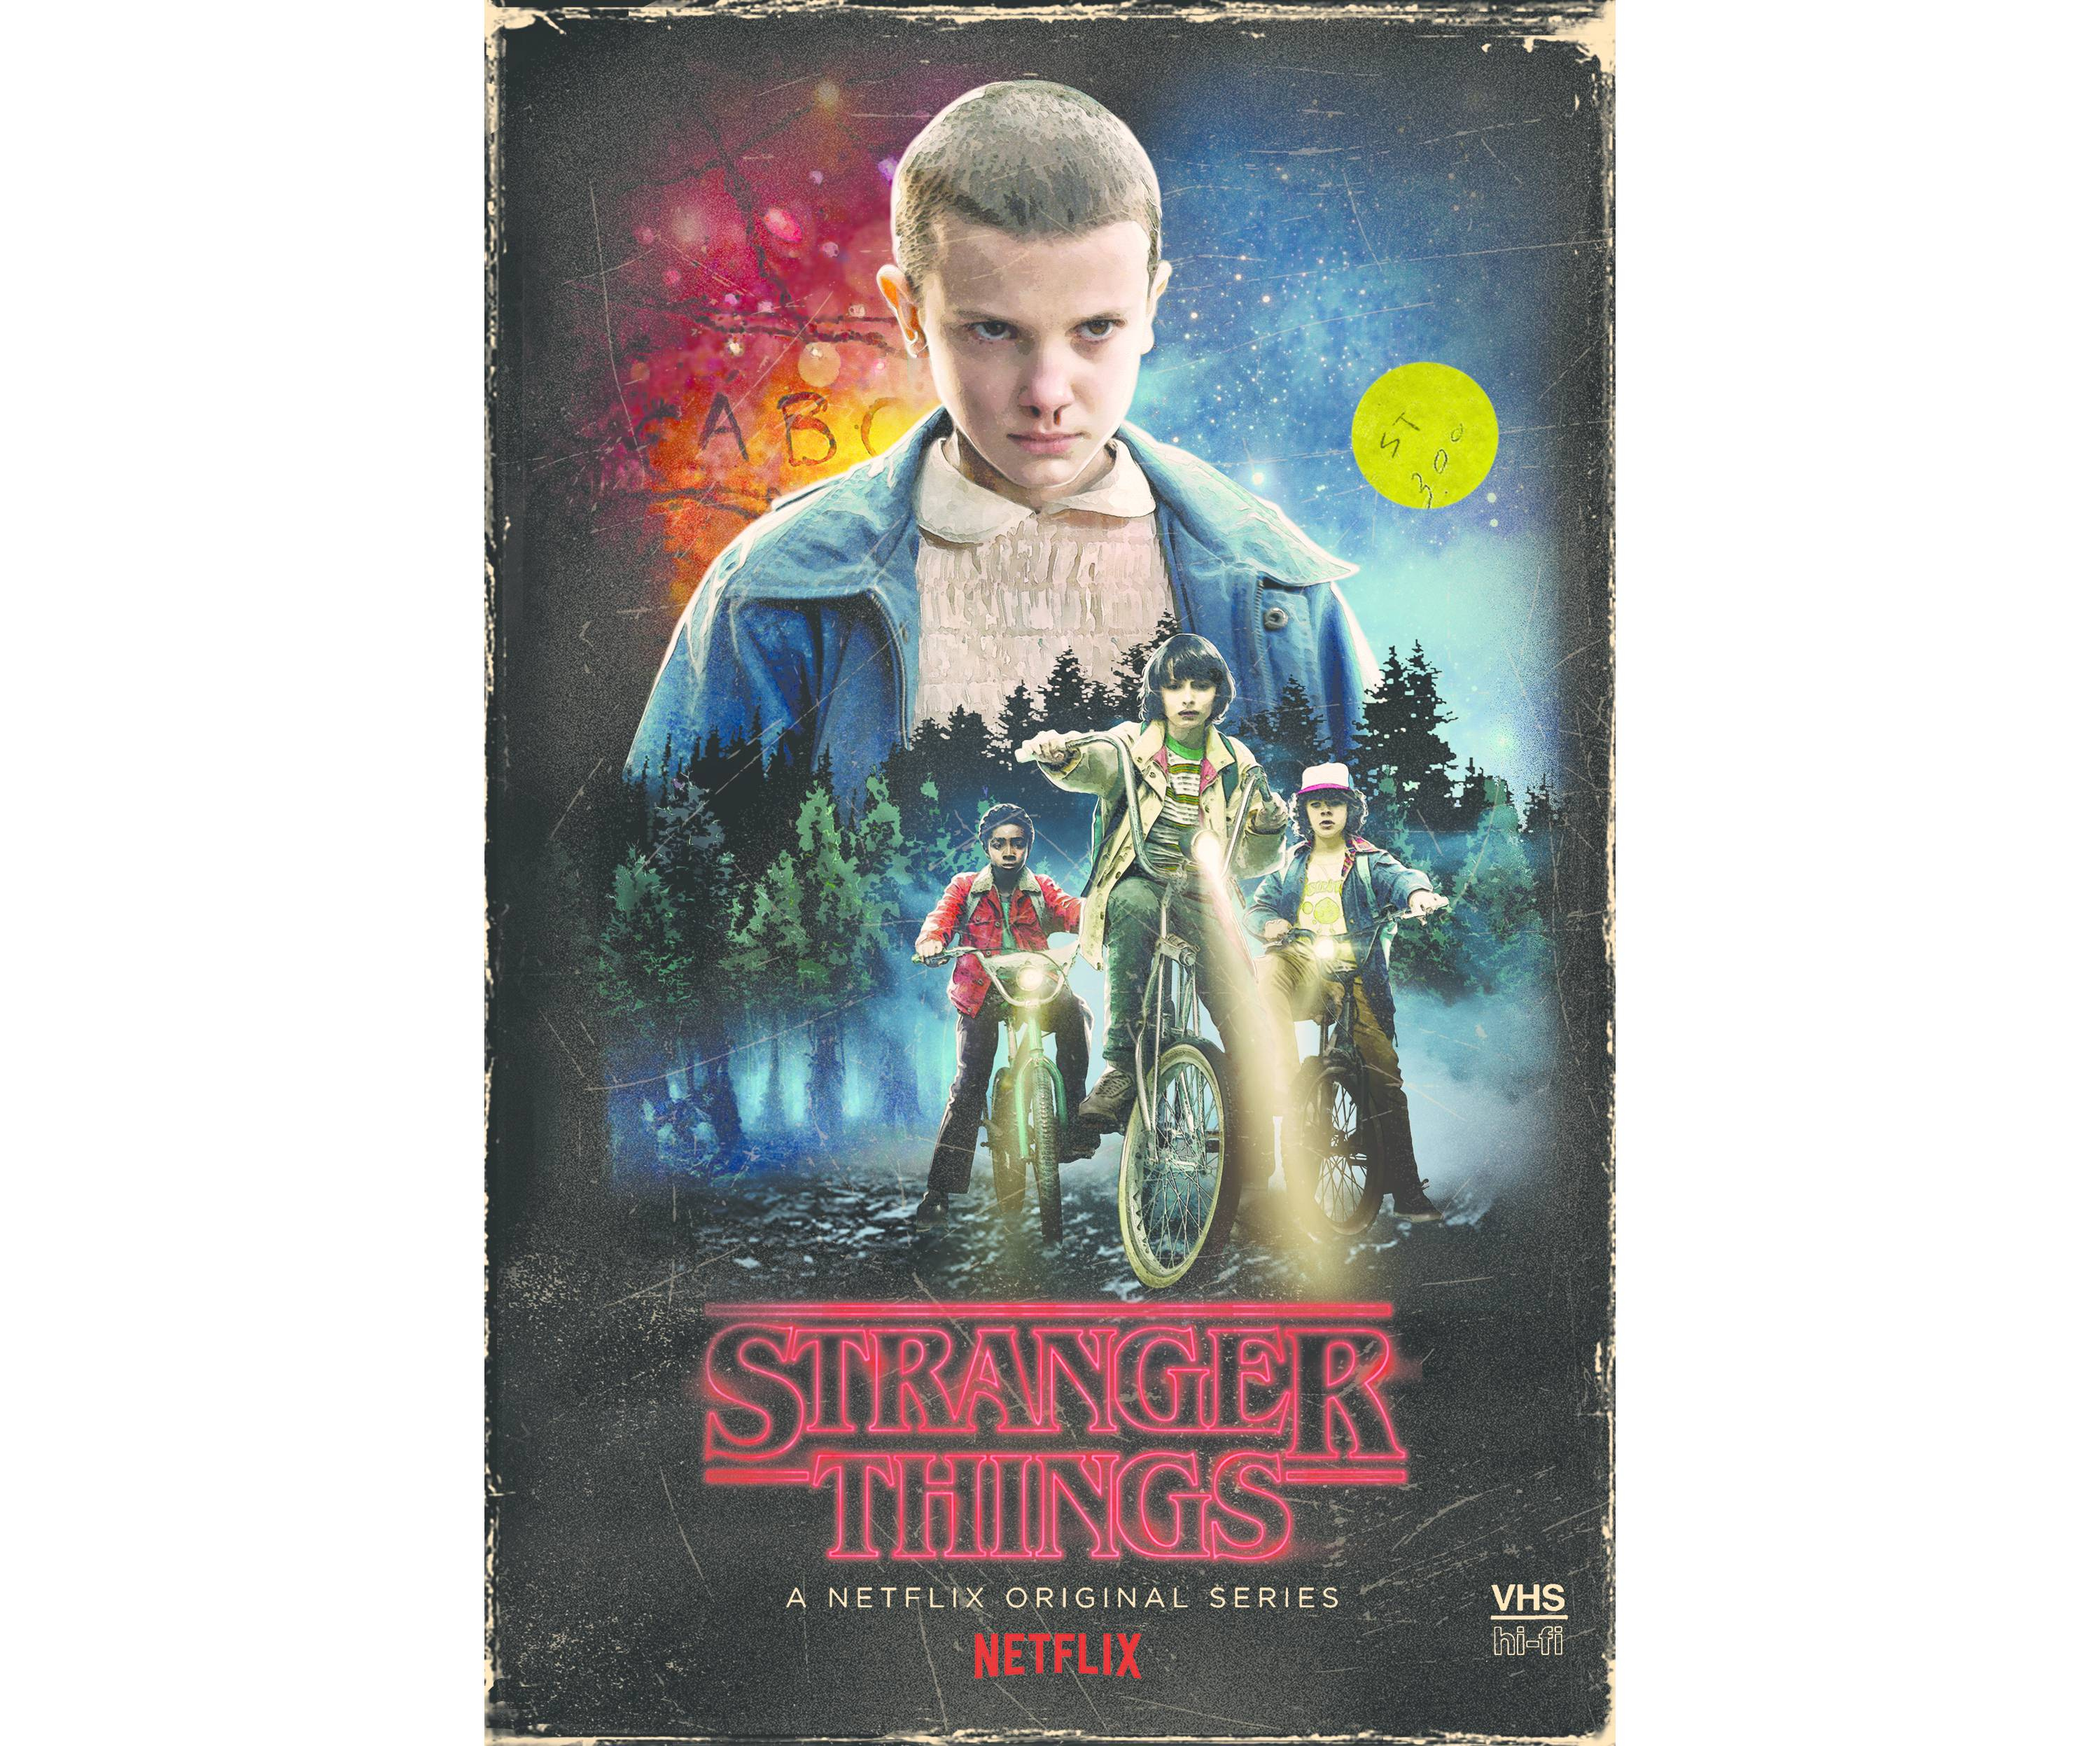 This Stranger Things Dvd Looks Like An Old Vhs Tape The